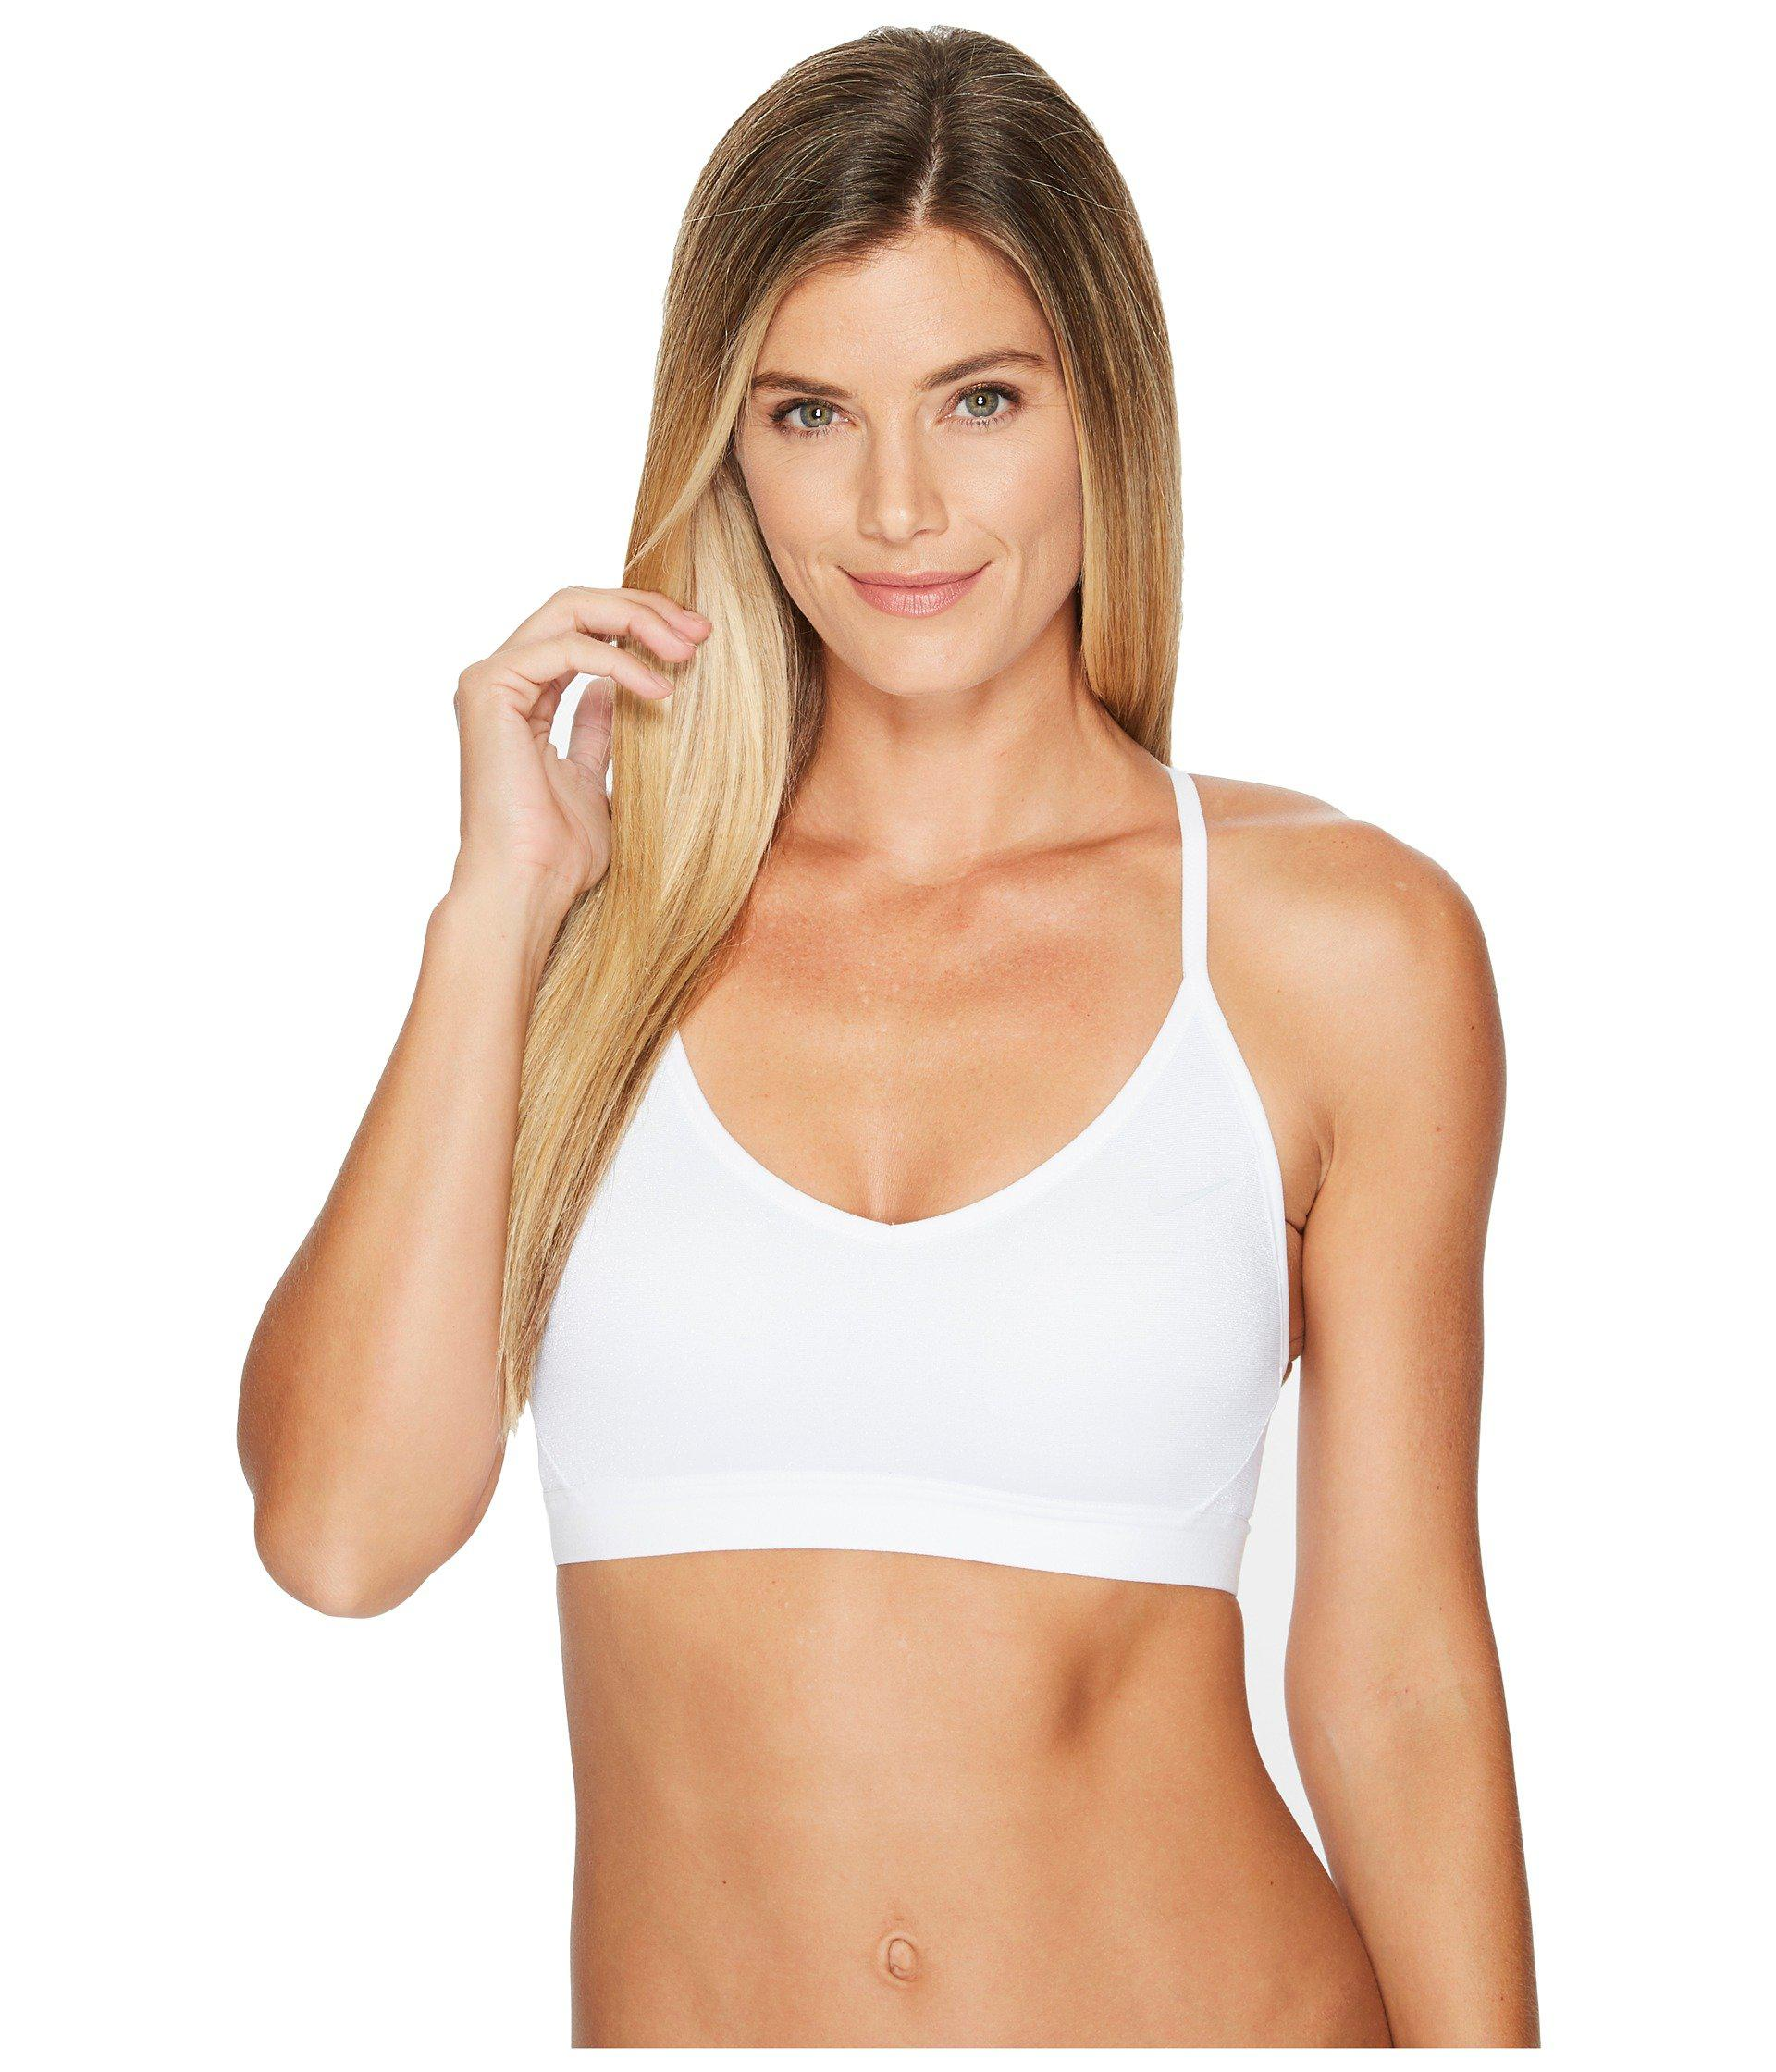 5f7d1df09d816 Lyst - Nike Indy Sparkle Light Support Sports Bra in White